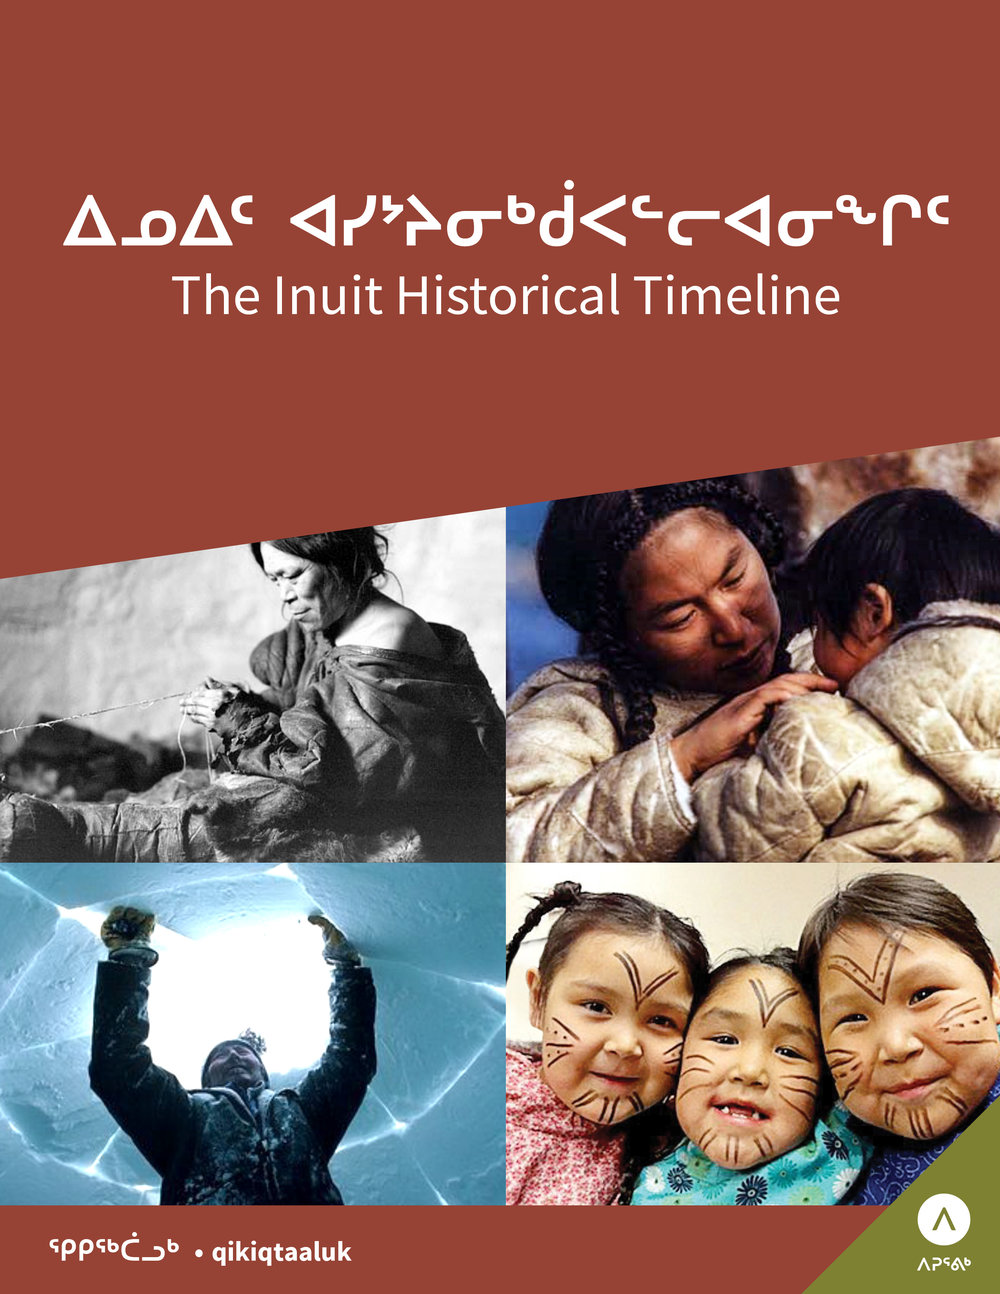 ᐃᓄᐃᑦ ᐊᓯᔾᔨᓂᒃᑰᐸᓪᓕᐊᓂᖏᑦThe Inuit Historical Timeline - Length of Course: 30 hoursDelivery format: 3.5 hour classes delivered daily over two weeksPrerequisites: Ability to understand conversational InuktutIn this course we explore the forces that have transformed life in Inuit communities over the past several generations. This begins in traditional times with full Inuit self-sufficiency, followed by the first European contacts and the gradual encroachment of the outside word. The second half of the course deals with the movement to reclaim Inuit control over decision-making, the historic land claims agreement and the current Nunavut era.